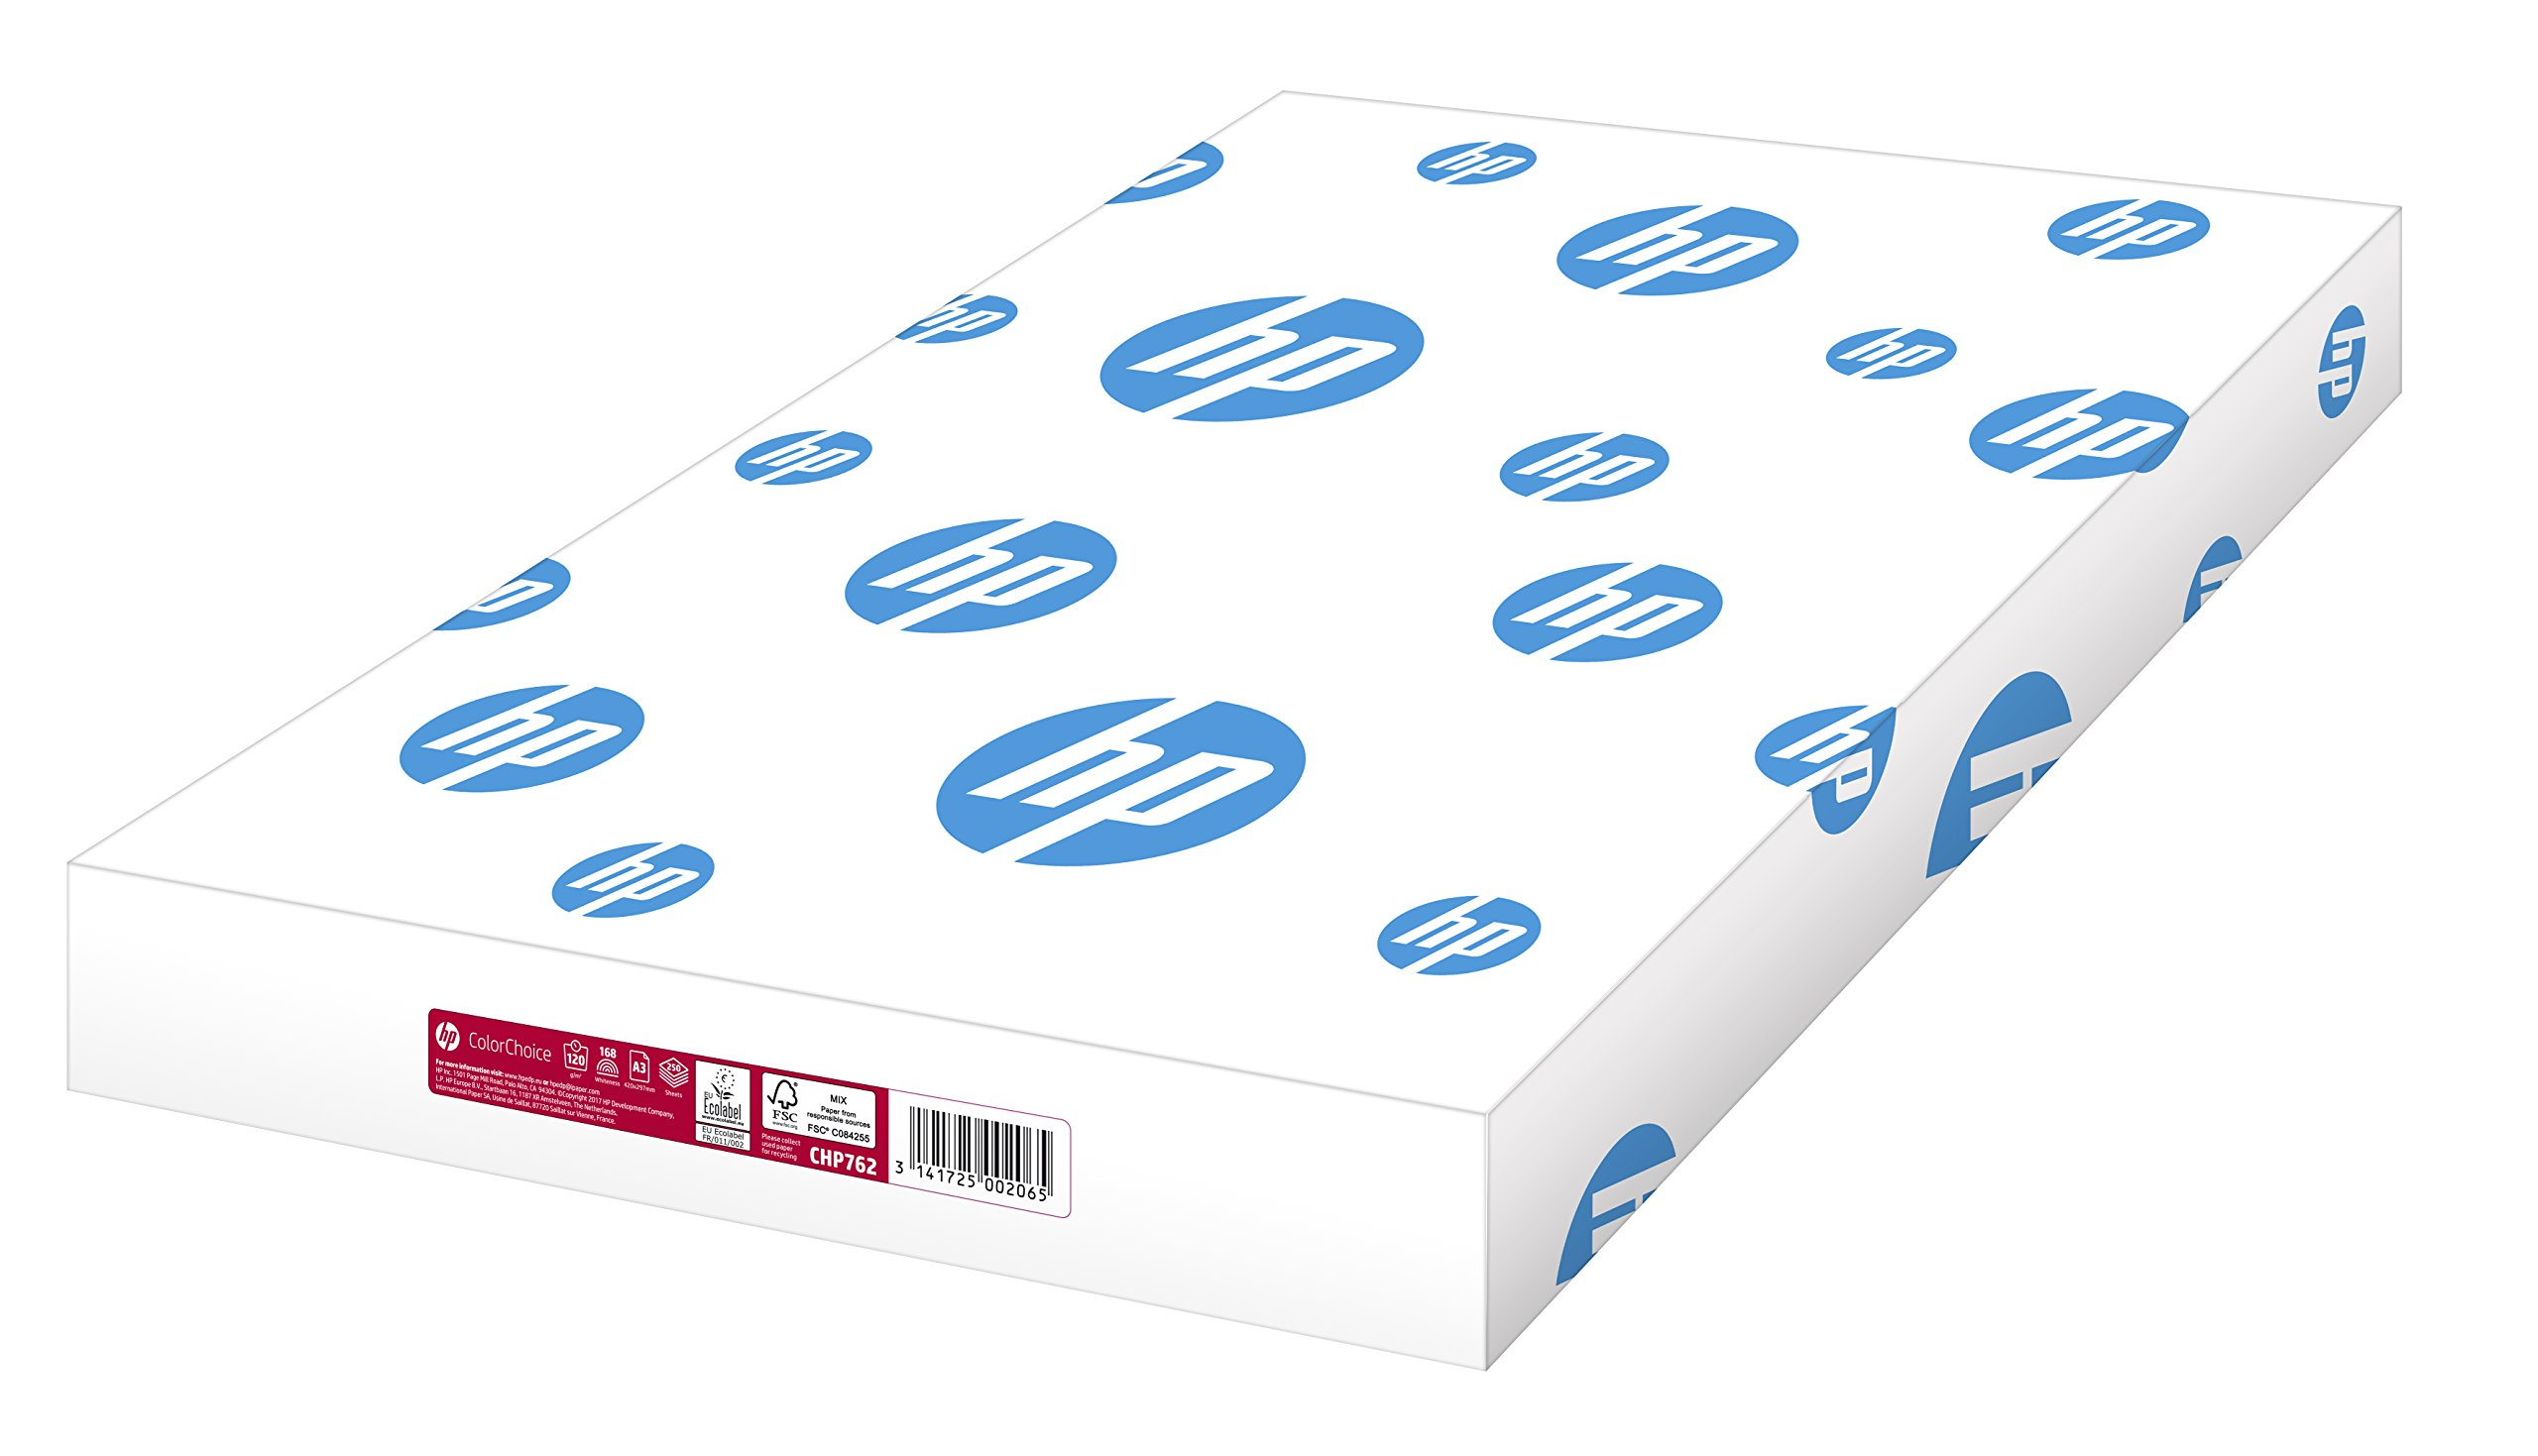 Hewlett Packard [HP] Colour Laser Paper Smooth 120gsm A3 White Ref HCL1030 [250 Sheets] by HP